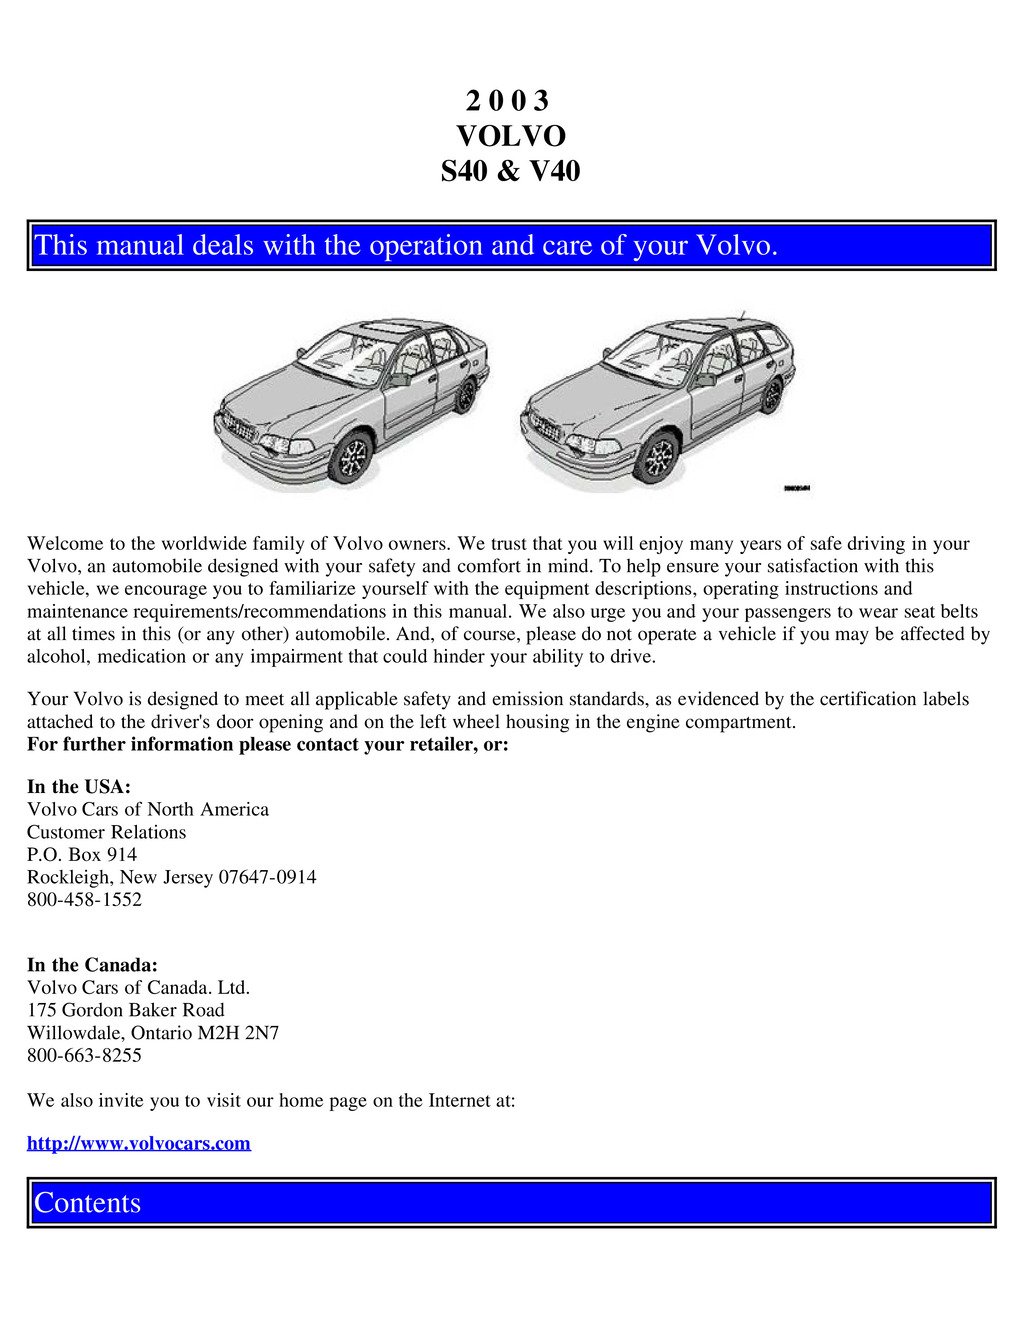 2003 Volvo S40 V40 owners manual